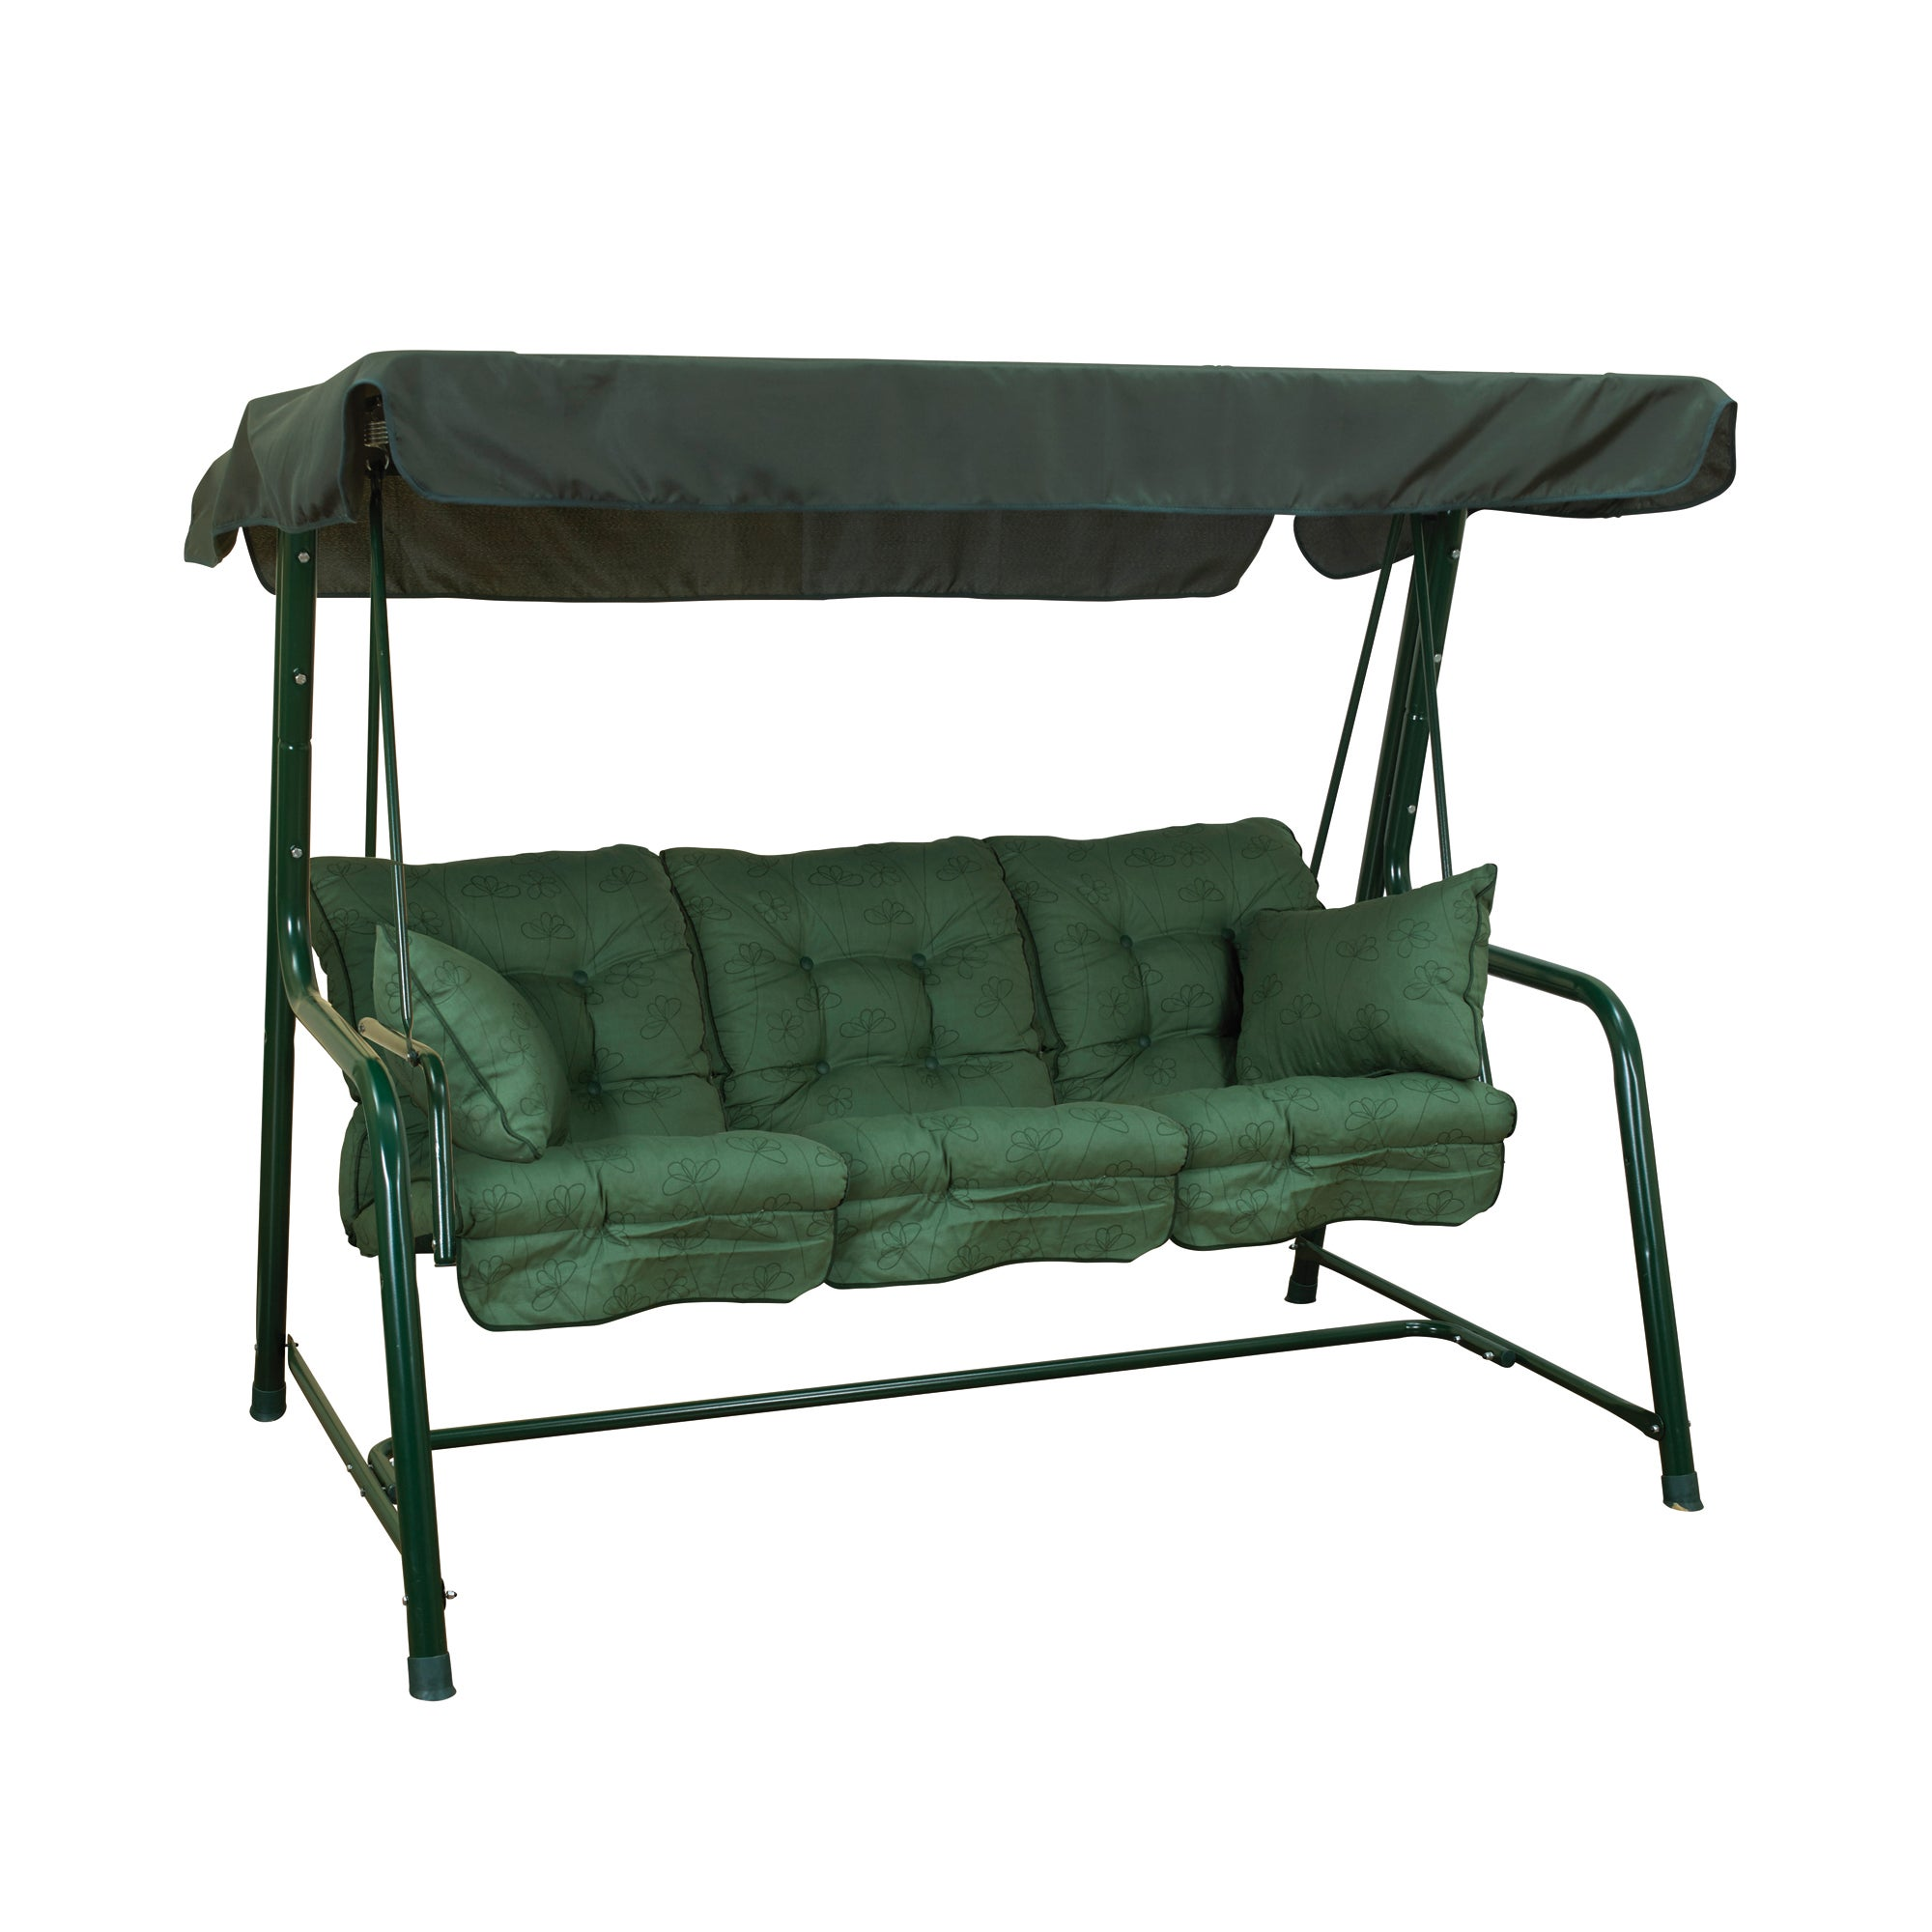 Glendale 3 Seater Swing Seat in Green Check Green